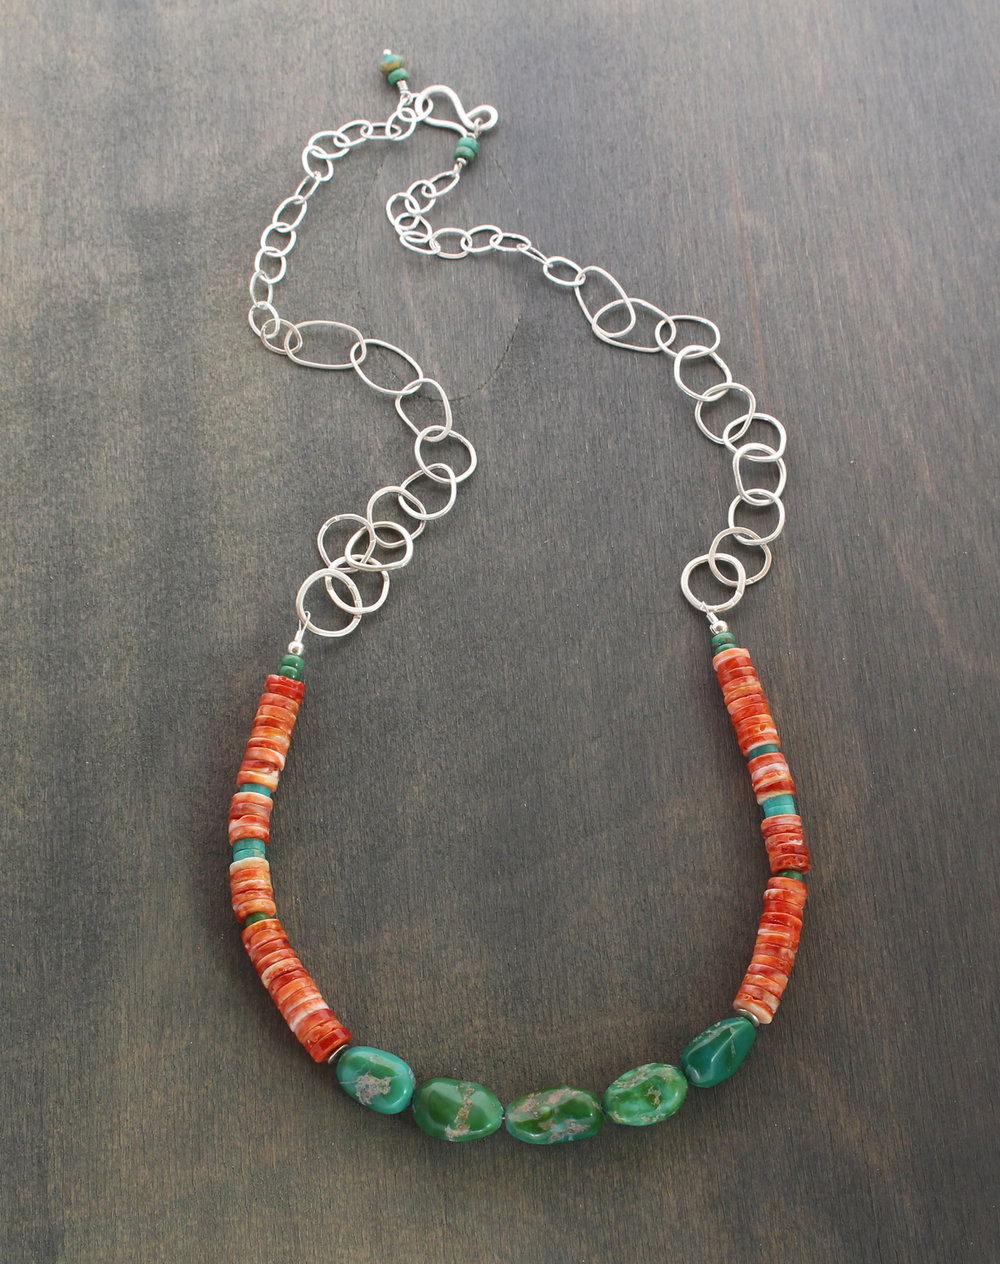 Spiny oyster shell, American turquoise beaded necklace with hand forged sterling silver chain.